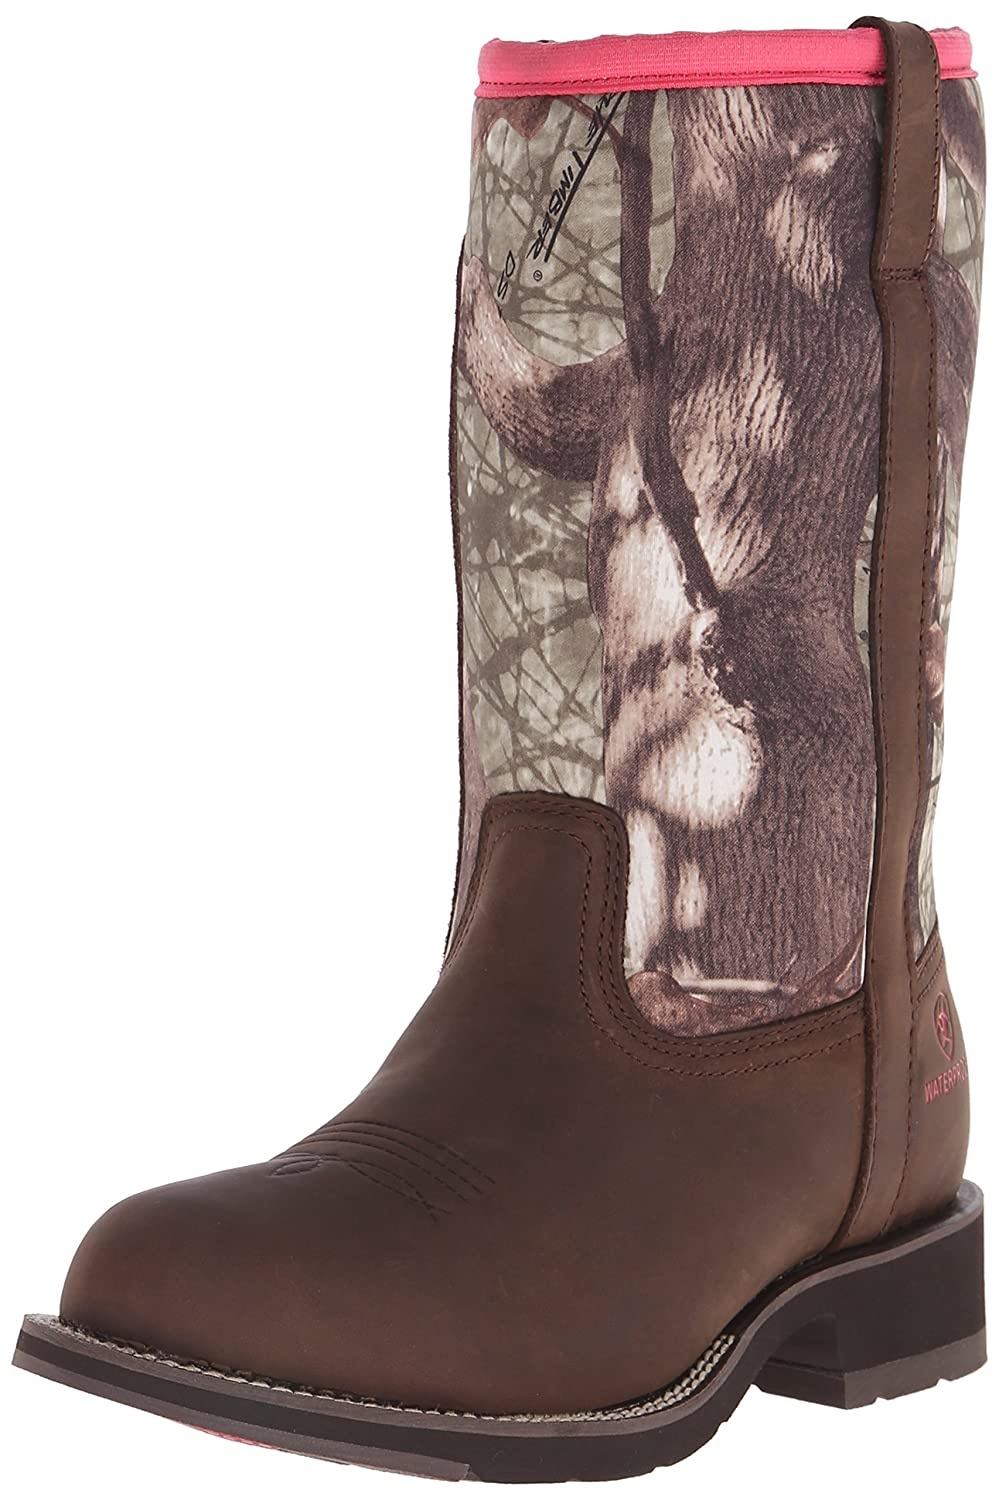 Women's Fatbaby All Weather Western Cowboy Boot